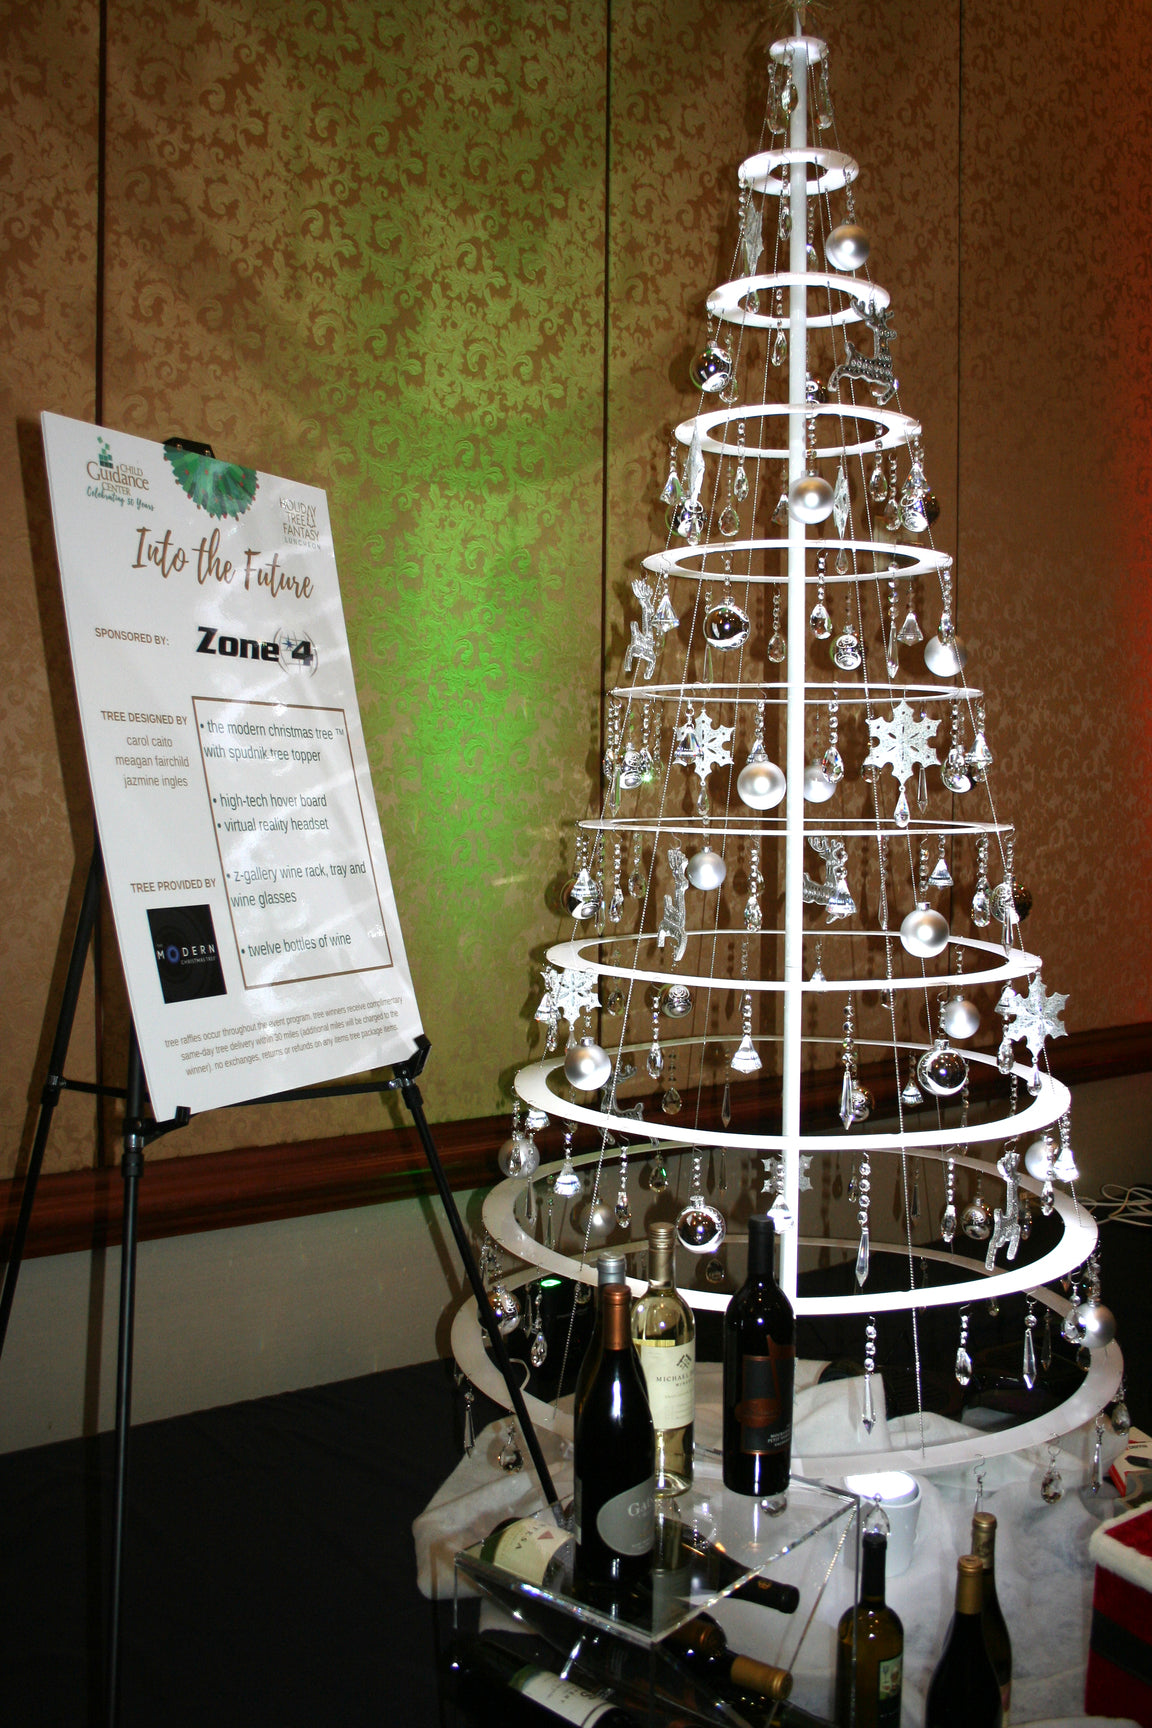 A wired Christmas tree in white decorated by various ornaments placed next to wine bottles and an information board